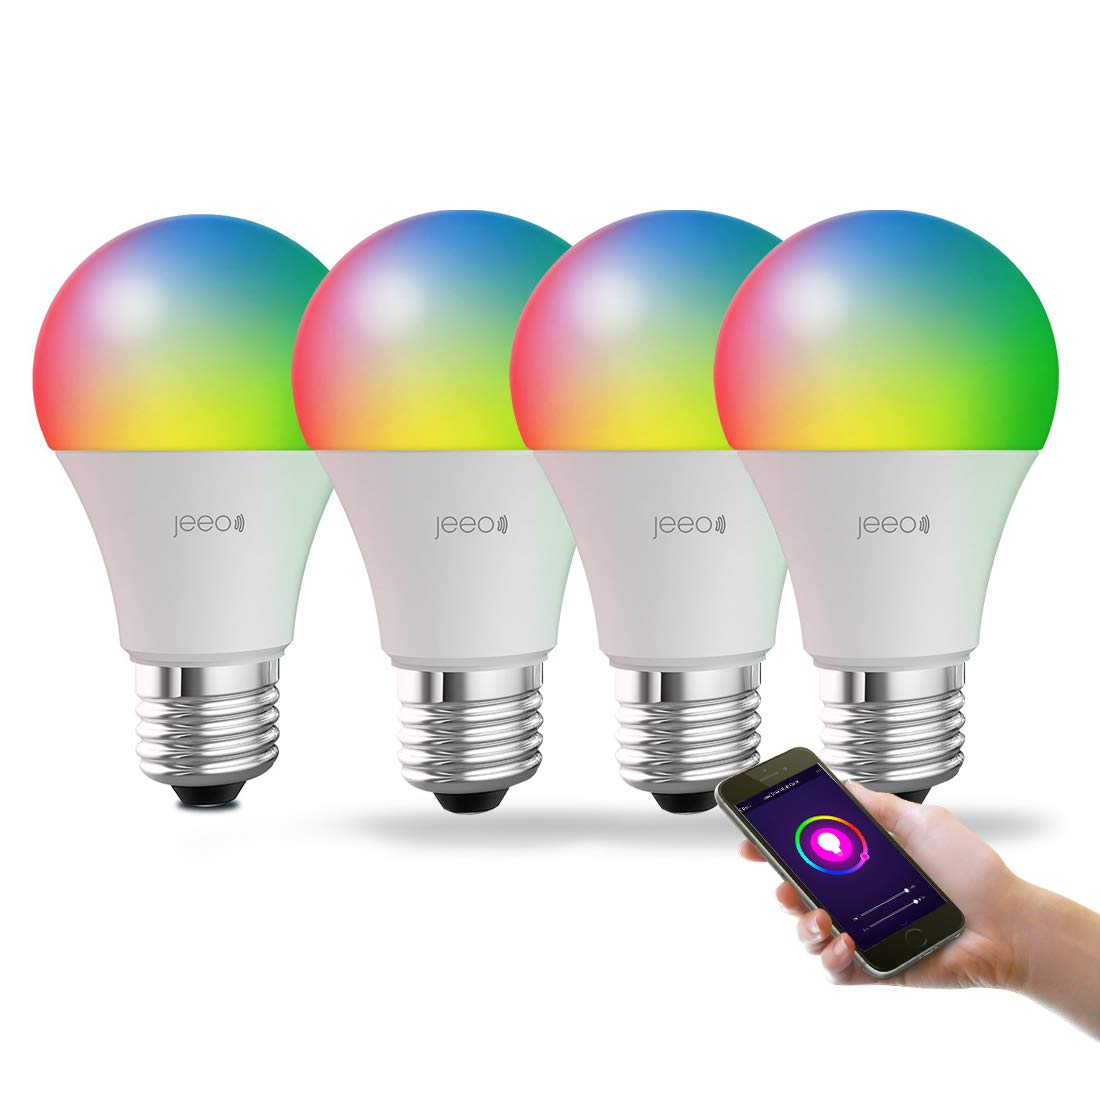 Jeeo Smart WiFi Light Bulb LED RGB Color Changing Dimmable Bulb Compatible with Alexa, Google Home Assistant, IFTTT (No Hub Required), A19 800 Lumens/60W Equivalent, Jeeo App Remote Control (4 Pack)